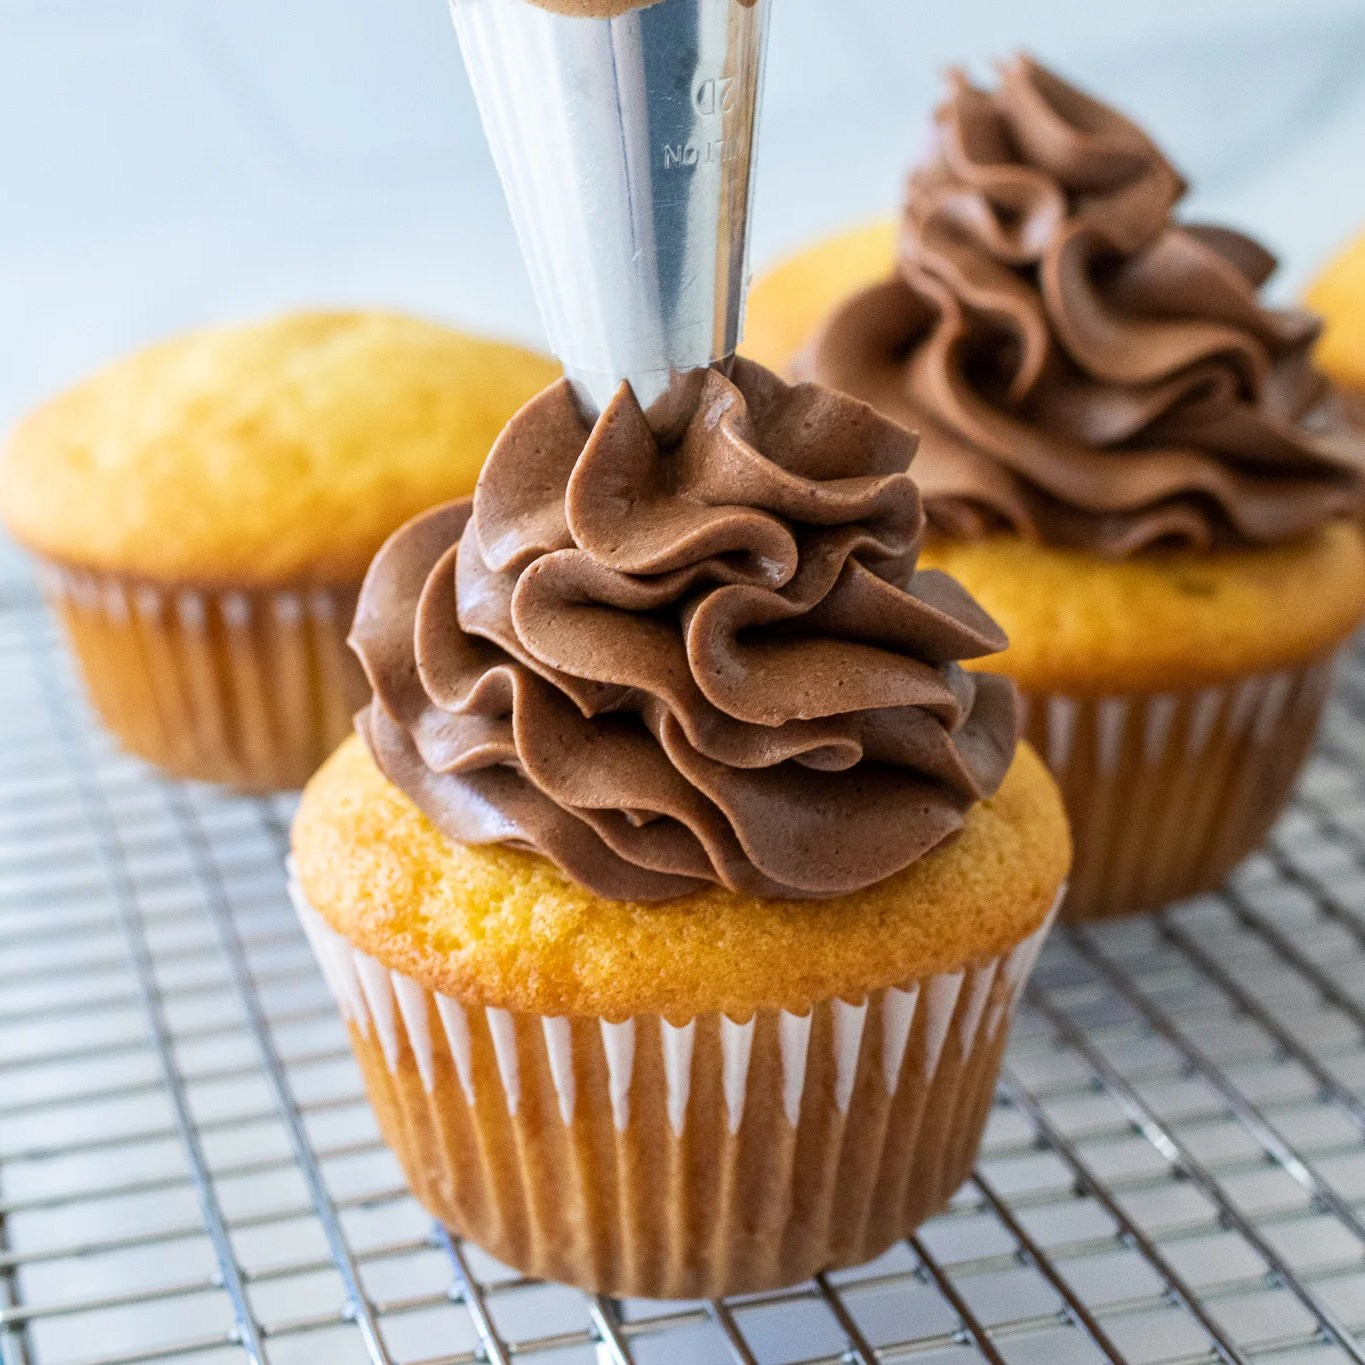 cream being piped onto a cupcake